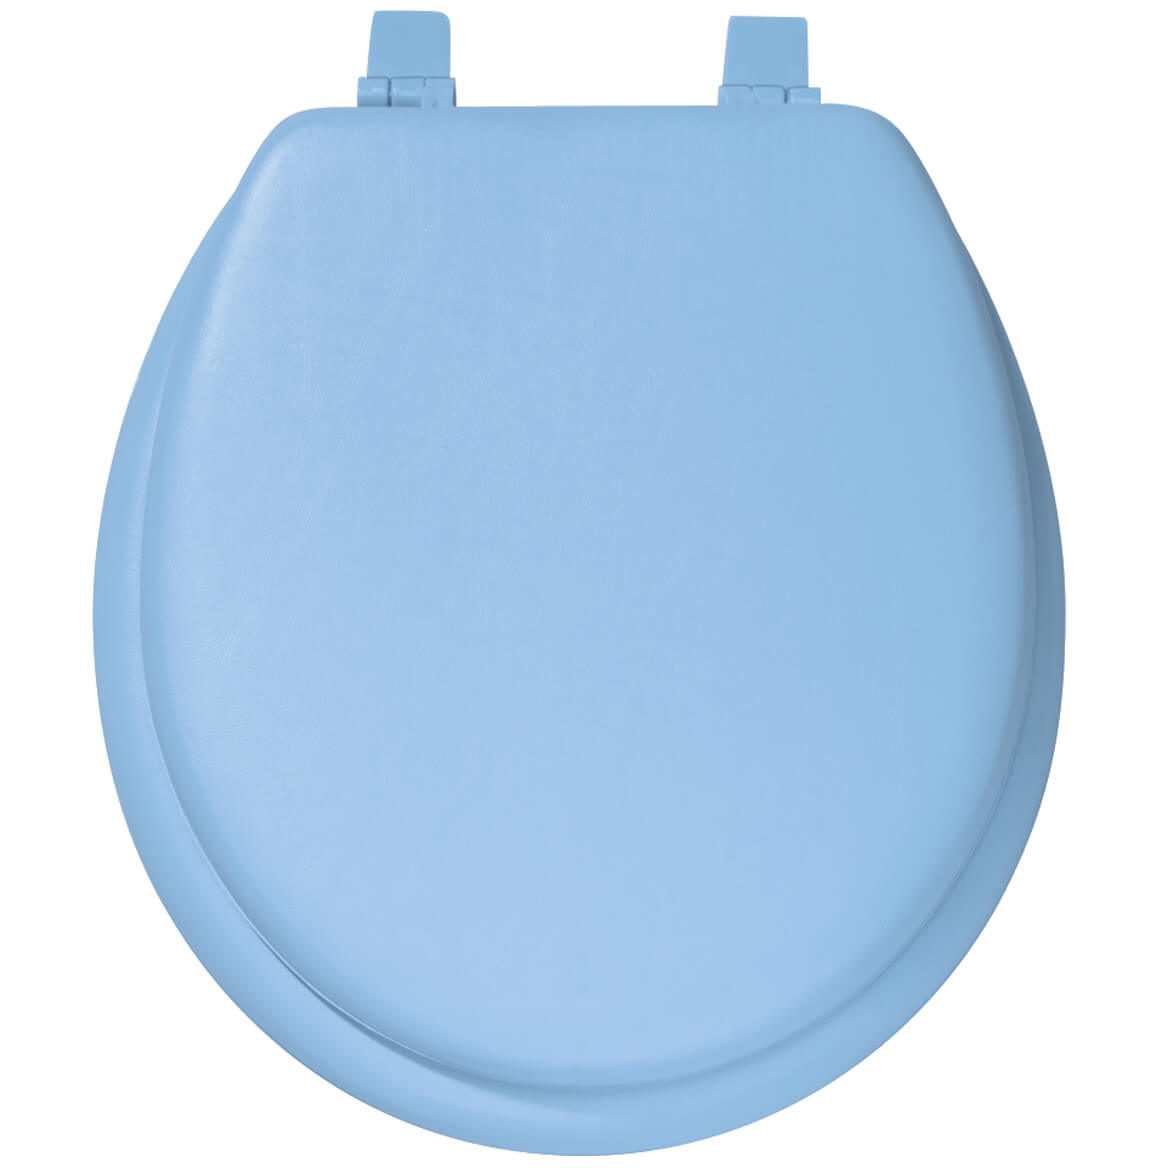 cushioned toilet seat covers. padded toilet seat and lid cushioned covers